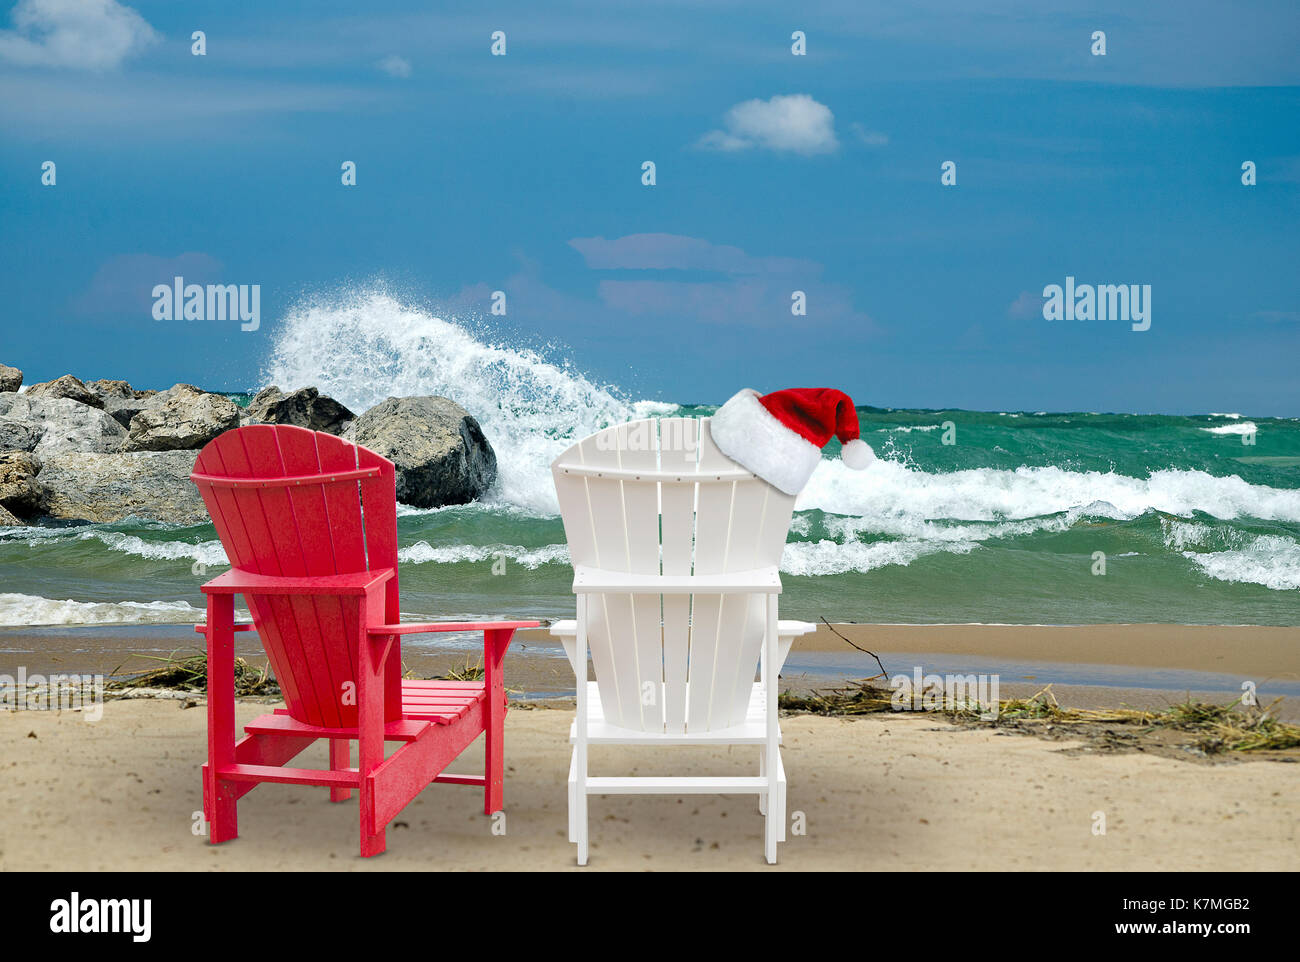 Adirondack Chairs On Beach With Christmas Hat